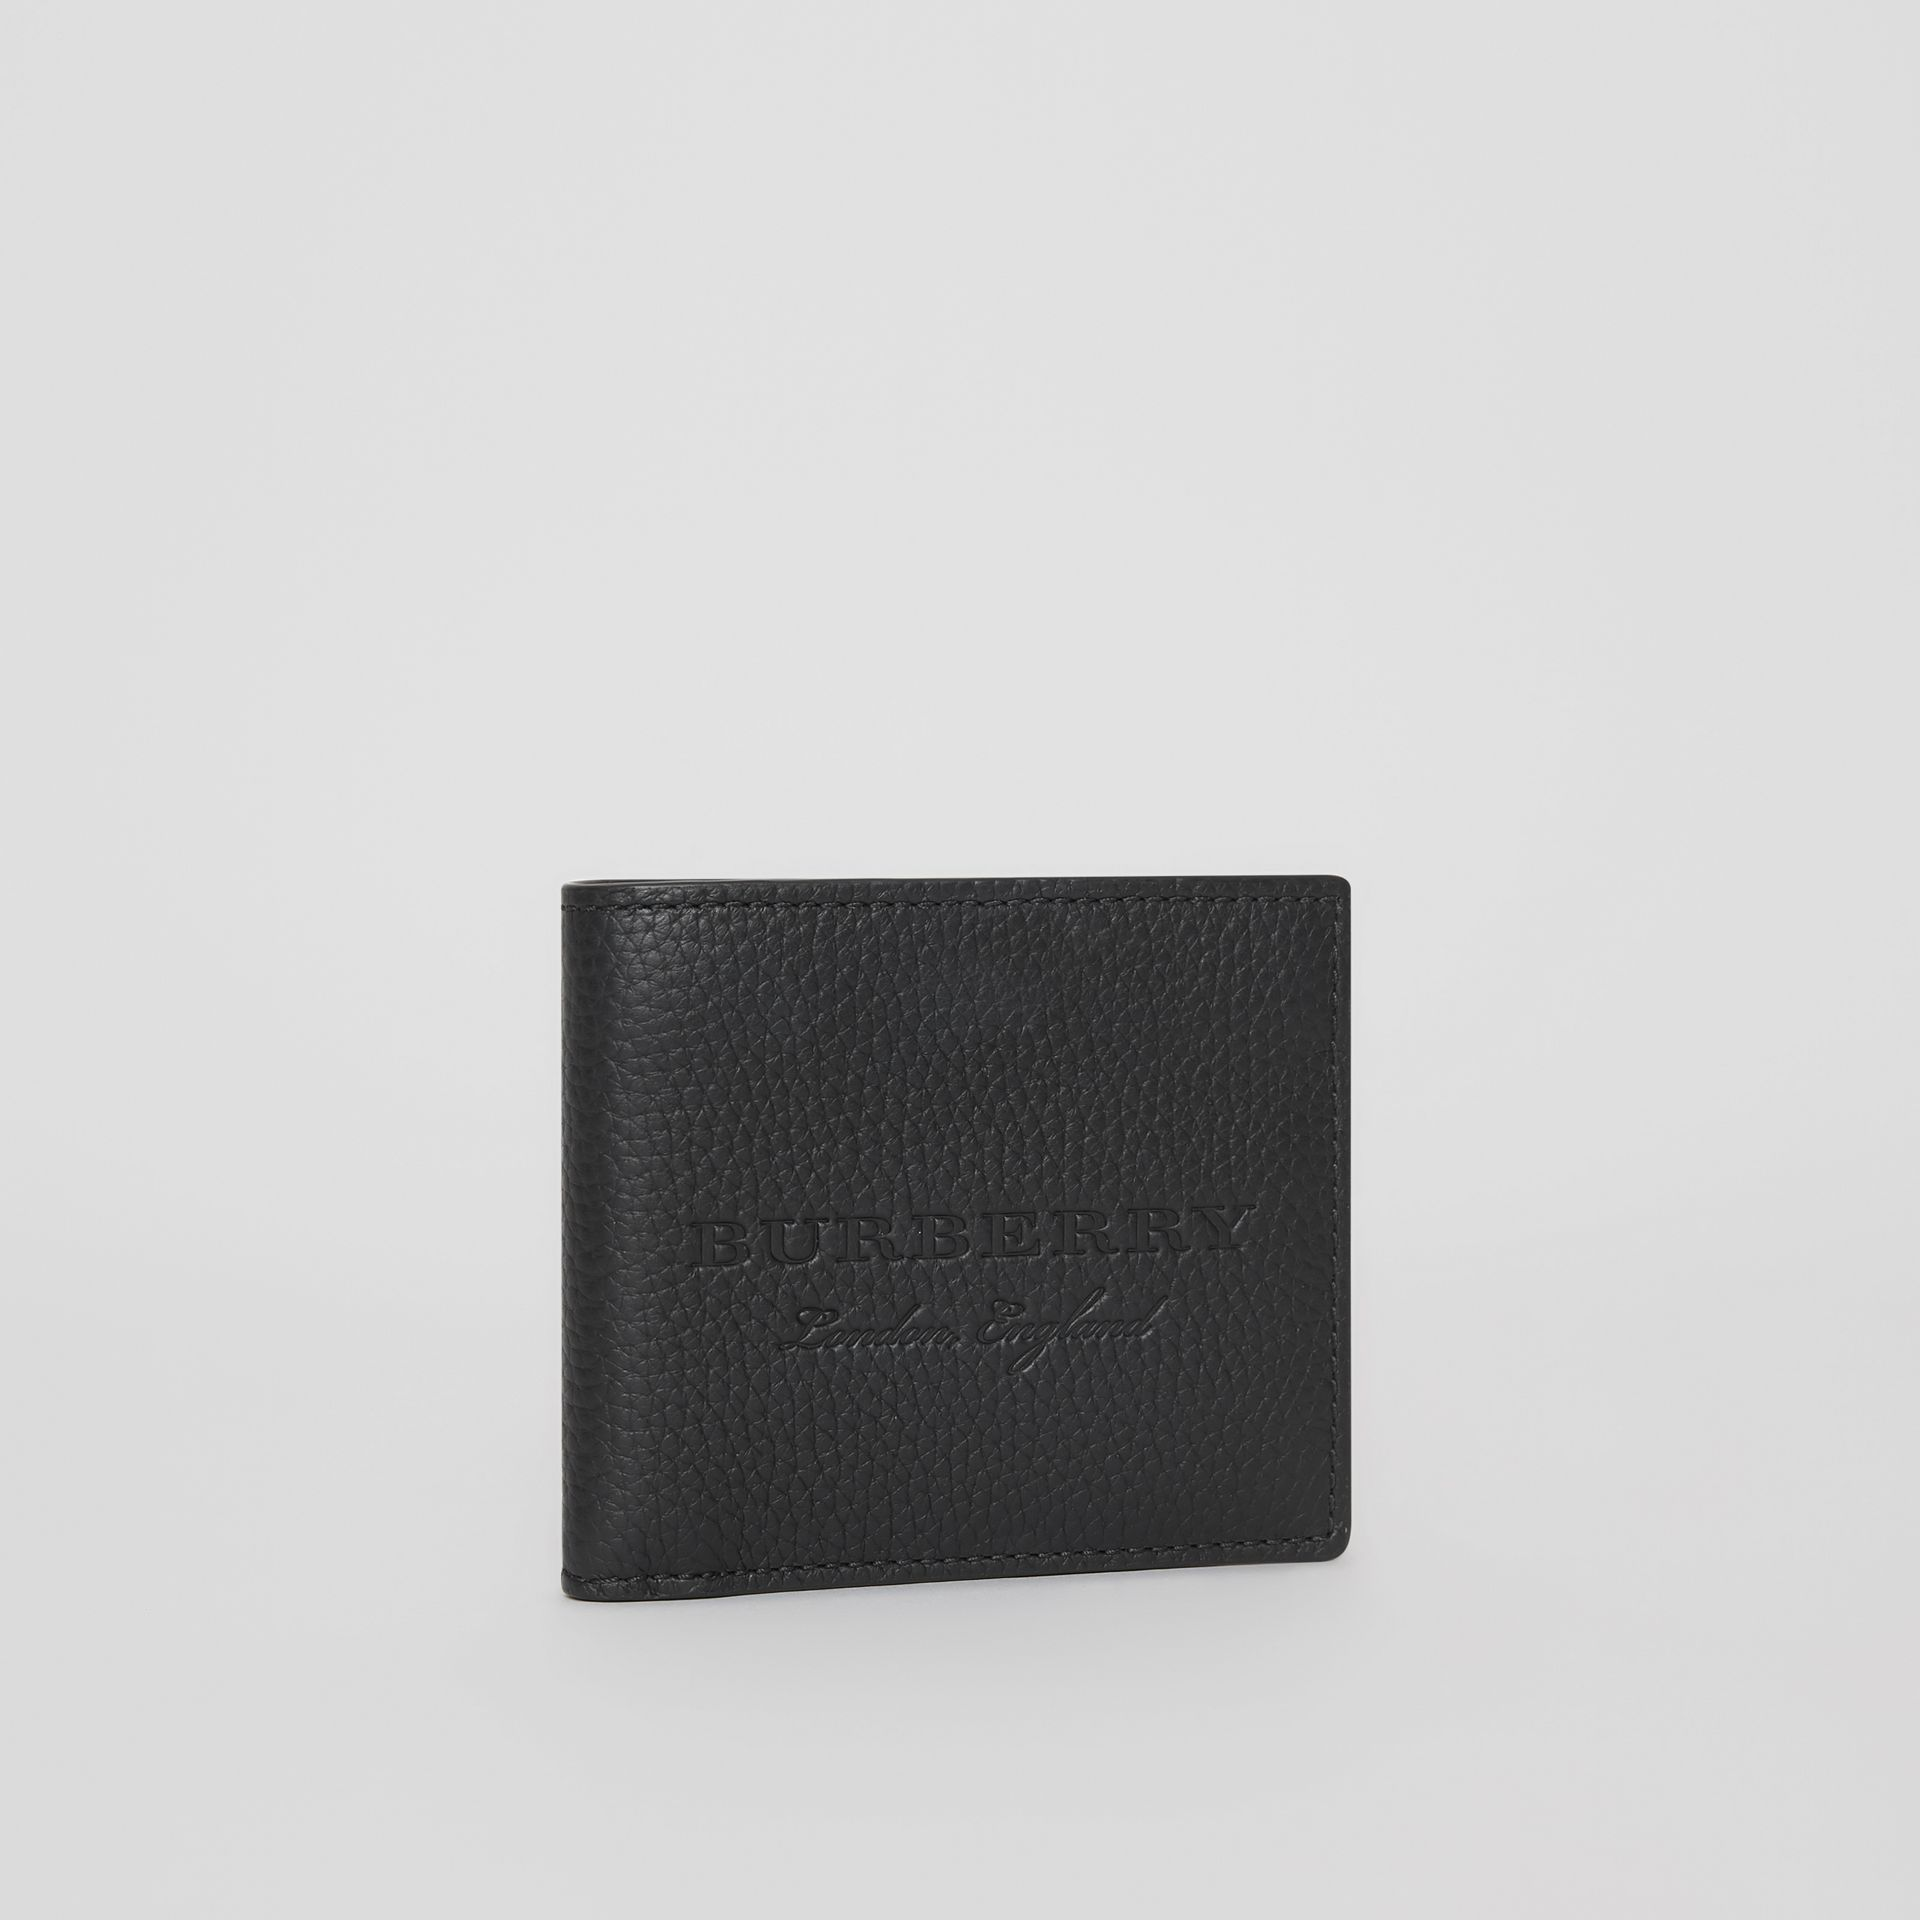 Embossed Leather Bifold Wallet in Black - Men | Burberry United Kingdom - gallery image 4